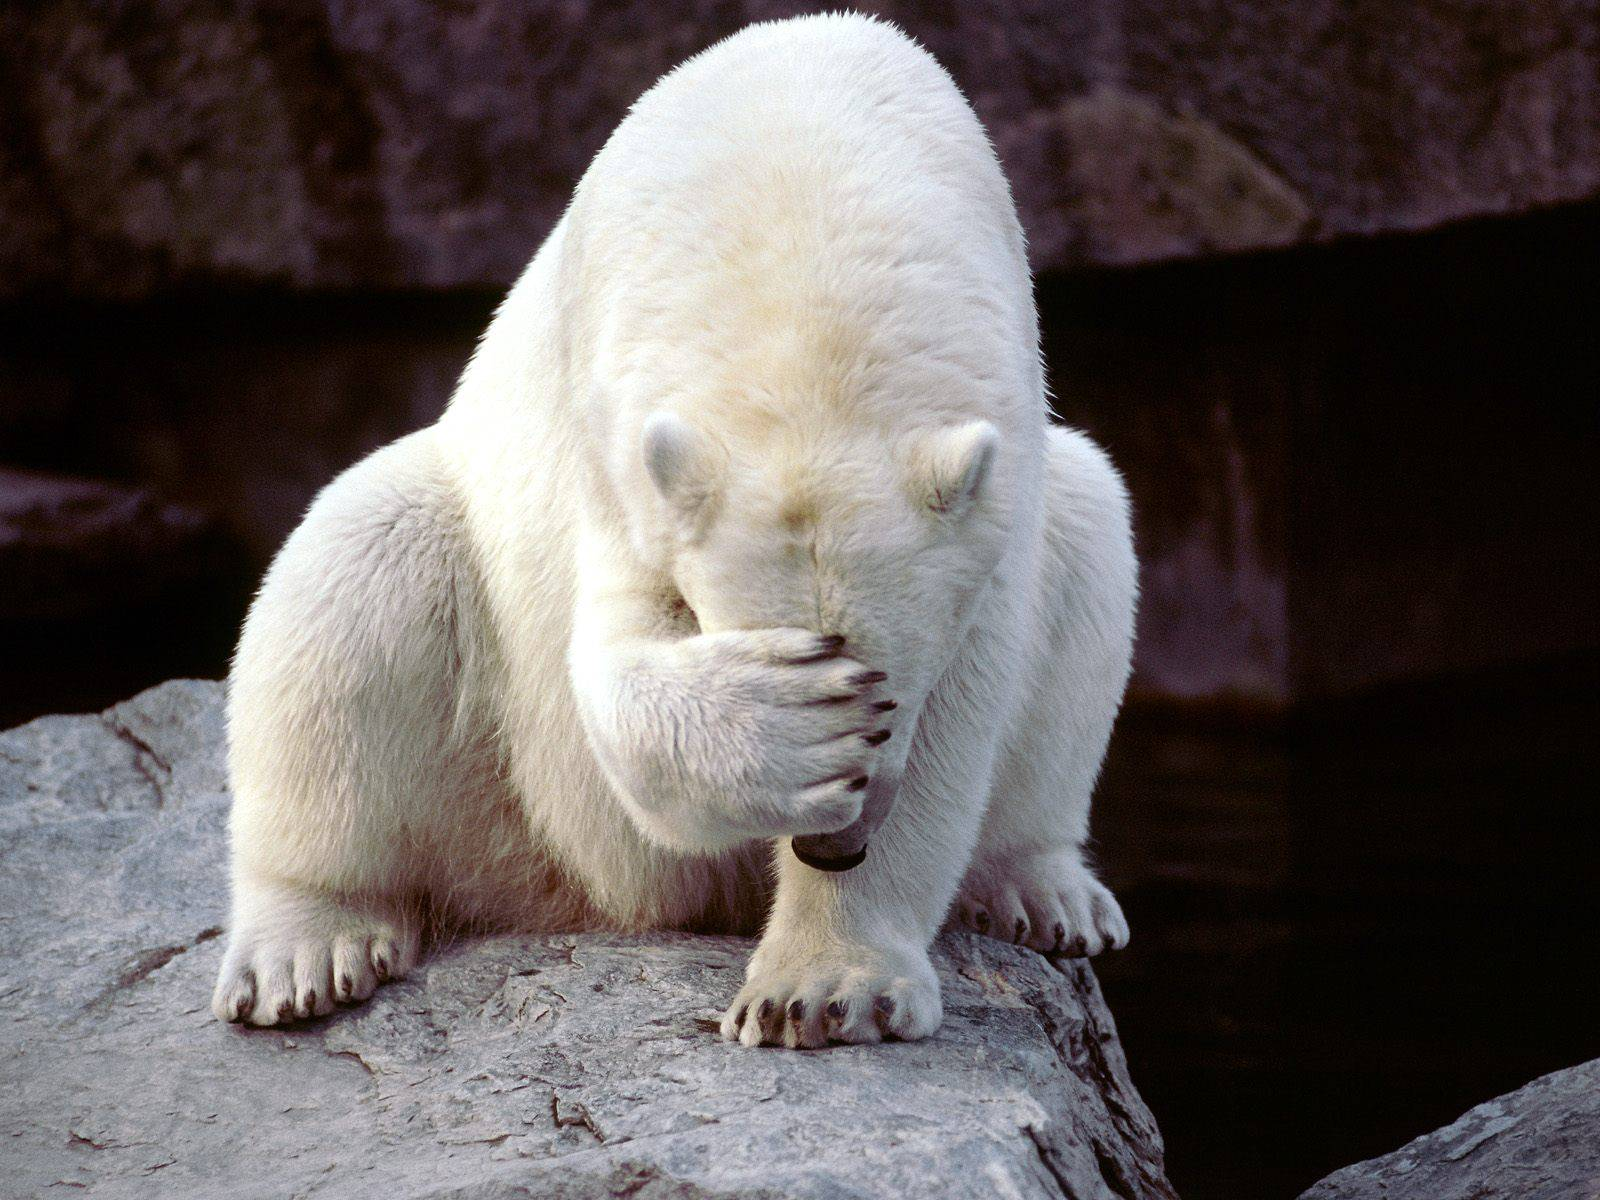 POlar_facepalm.jpg